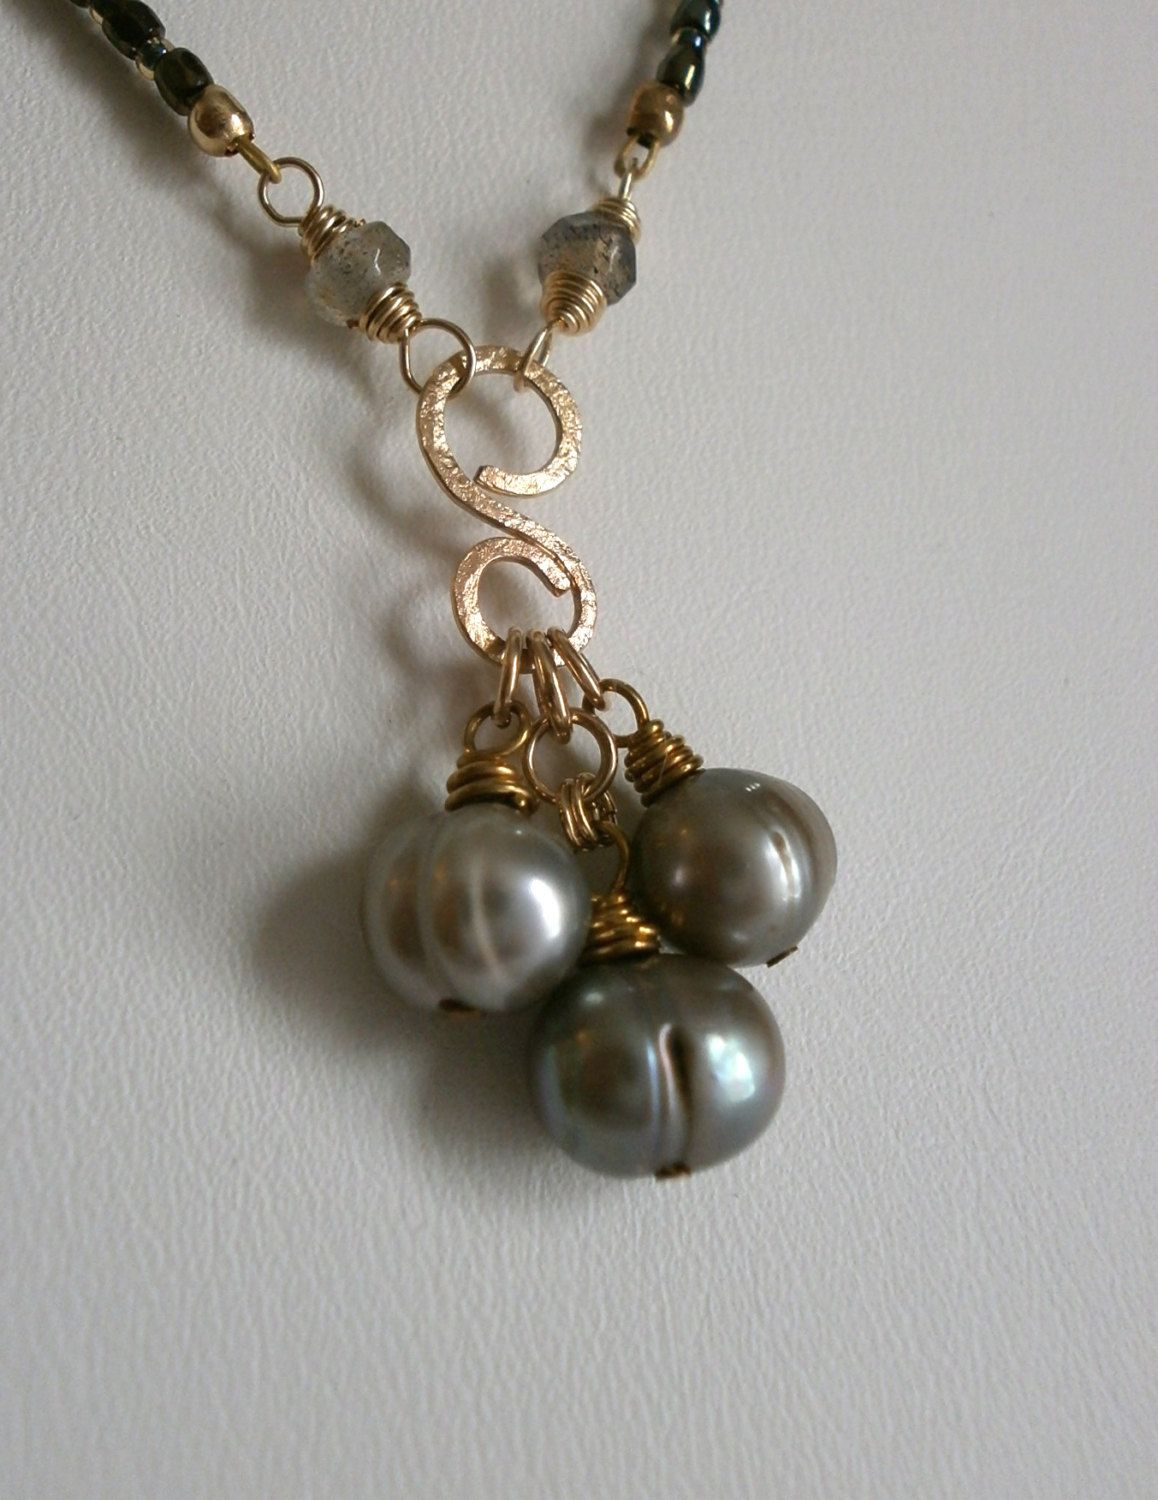 https://www.etsy.com/listing/69715595/gray-pearl-necklace-iridescent-delicate